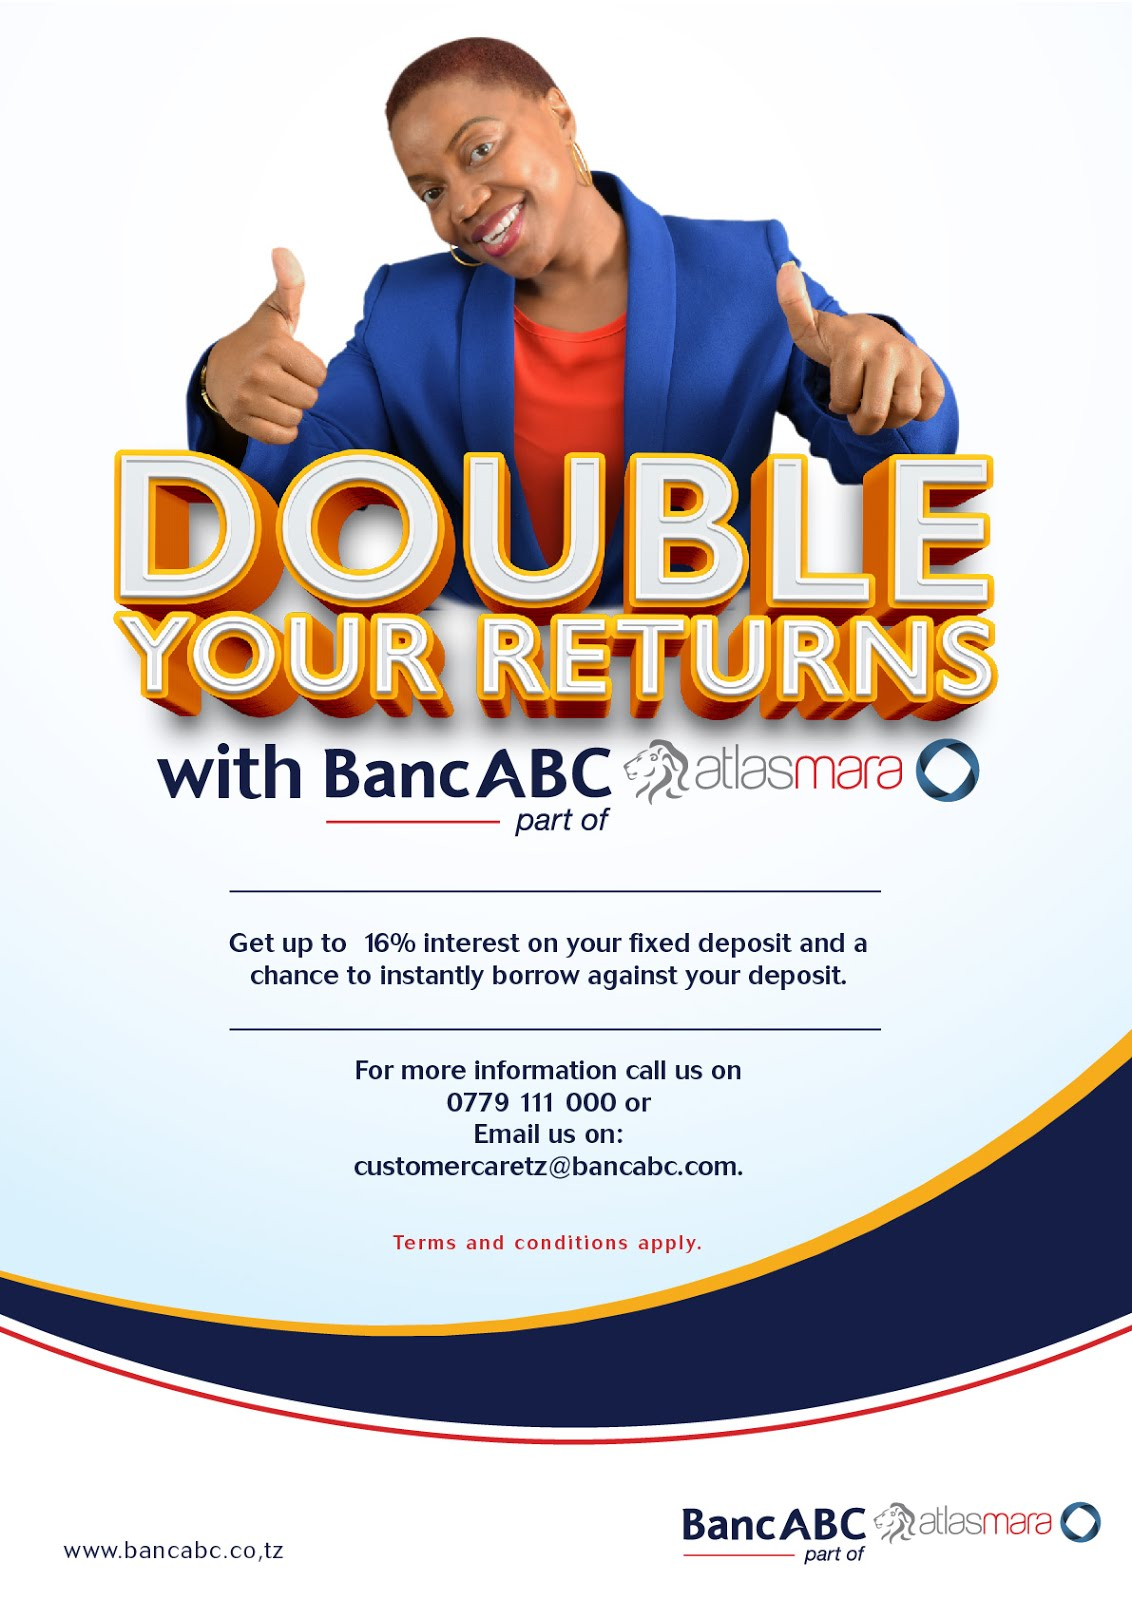 DOUBLE YOUR RETURNS WITH BANCABC